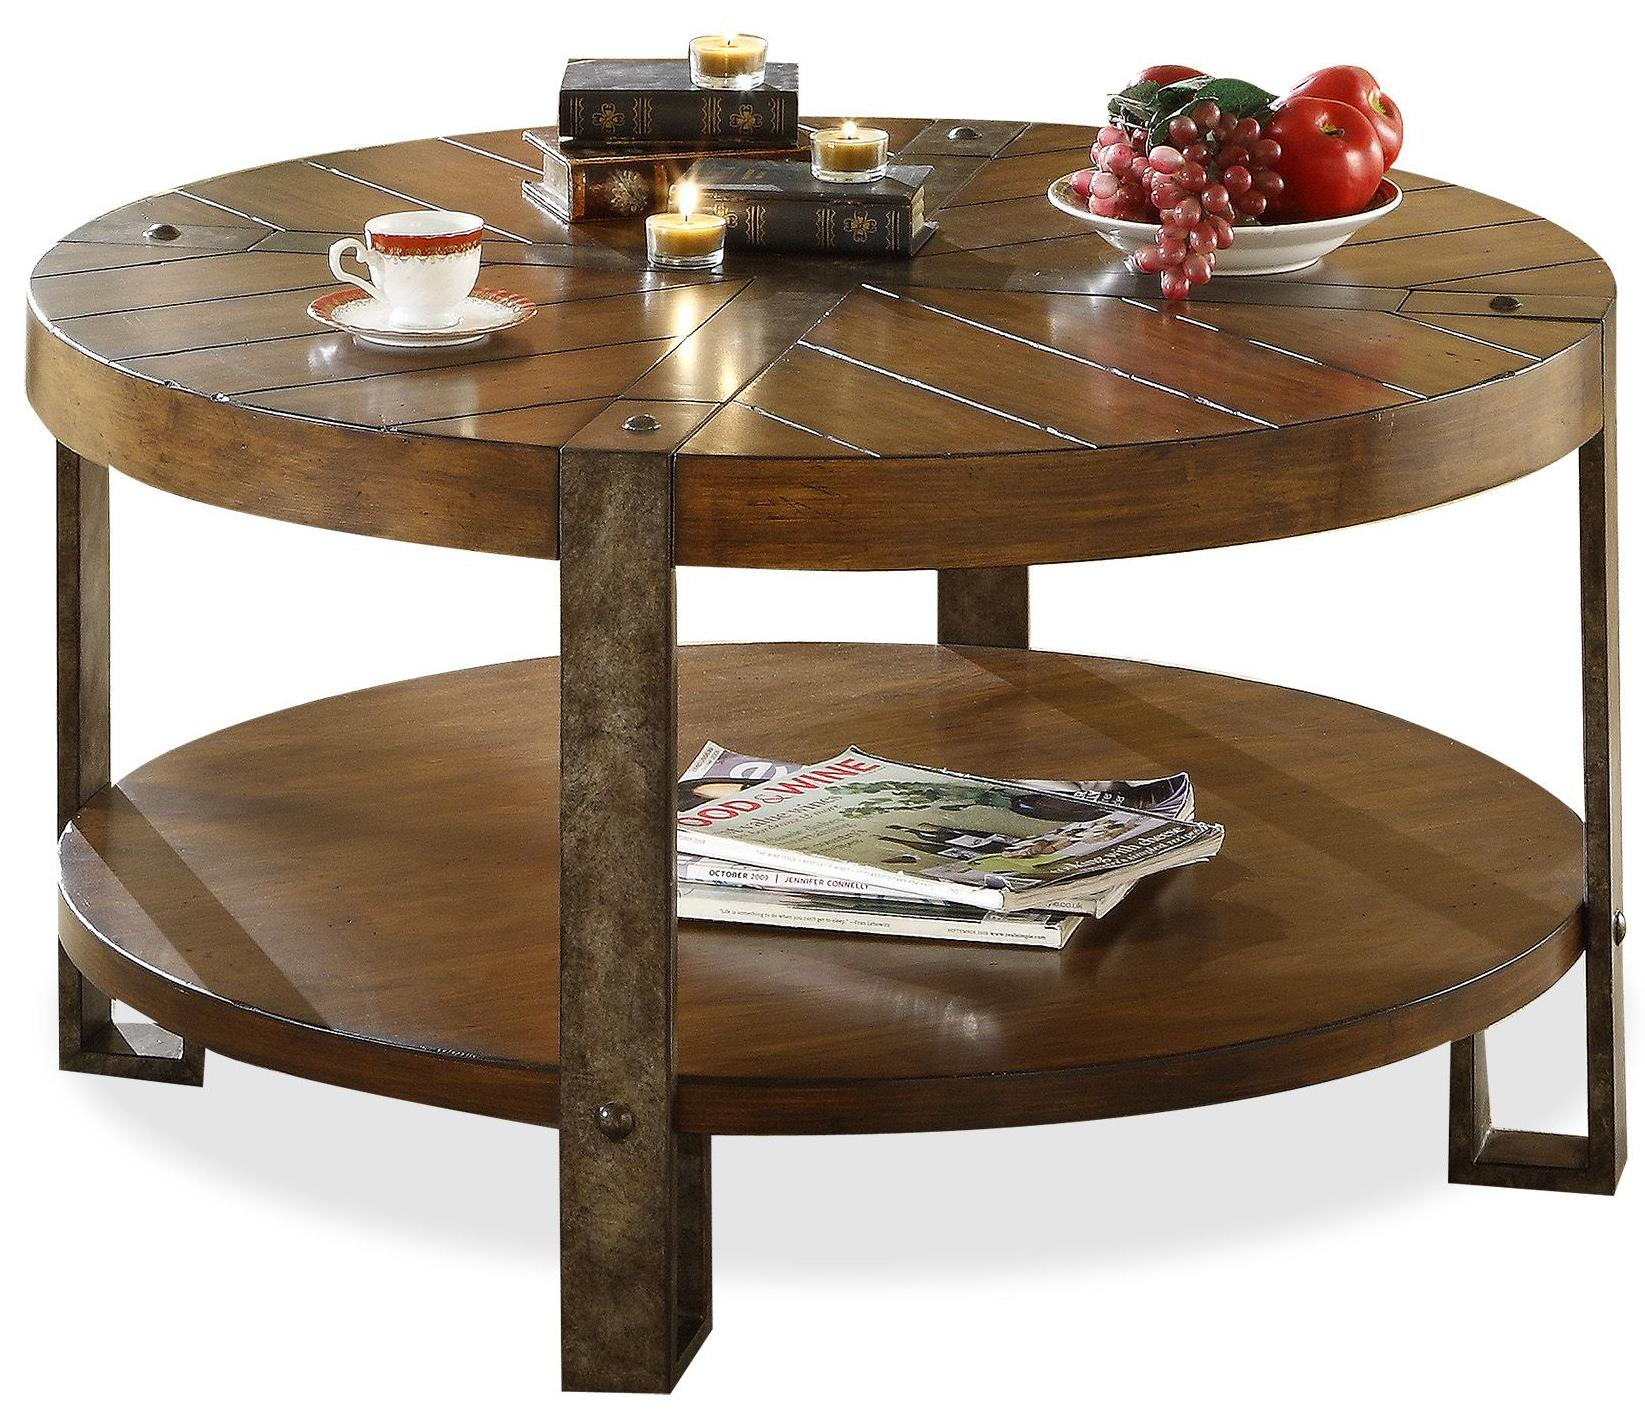 Riverside furniture sierra round wooden coffee table with for Coffee tables value city furniture